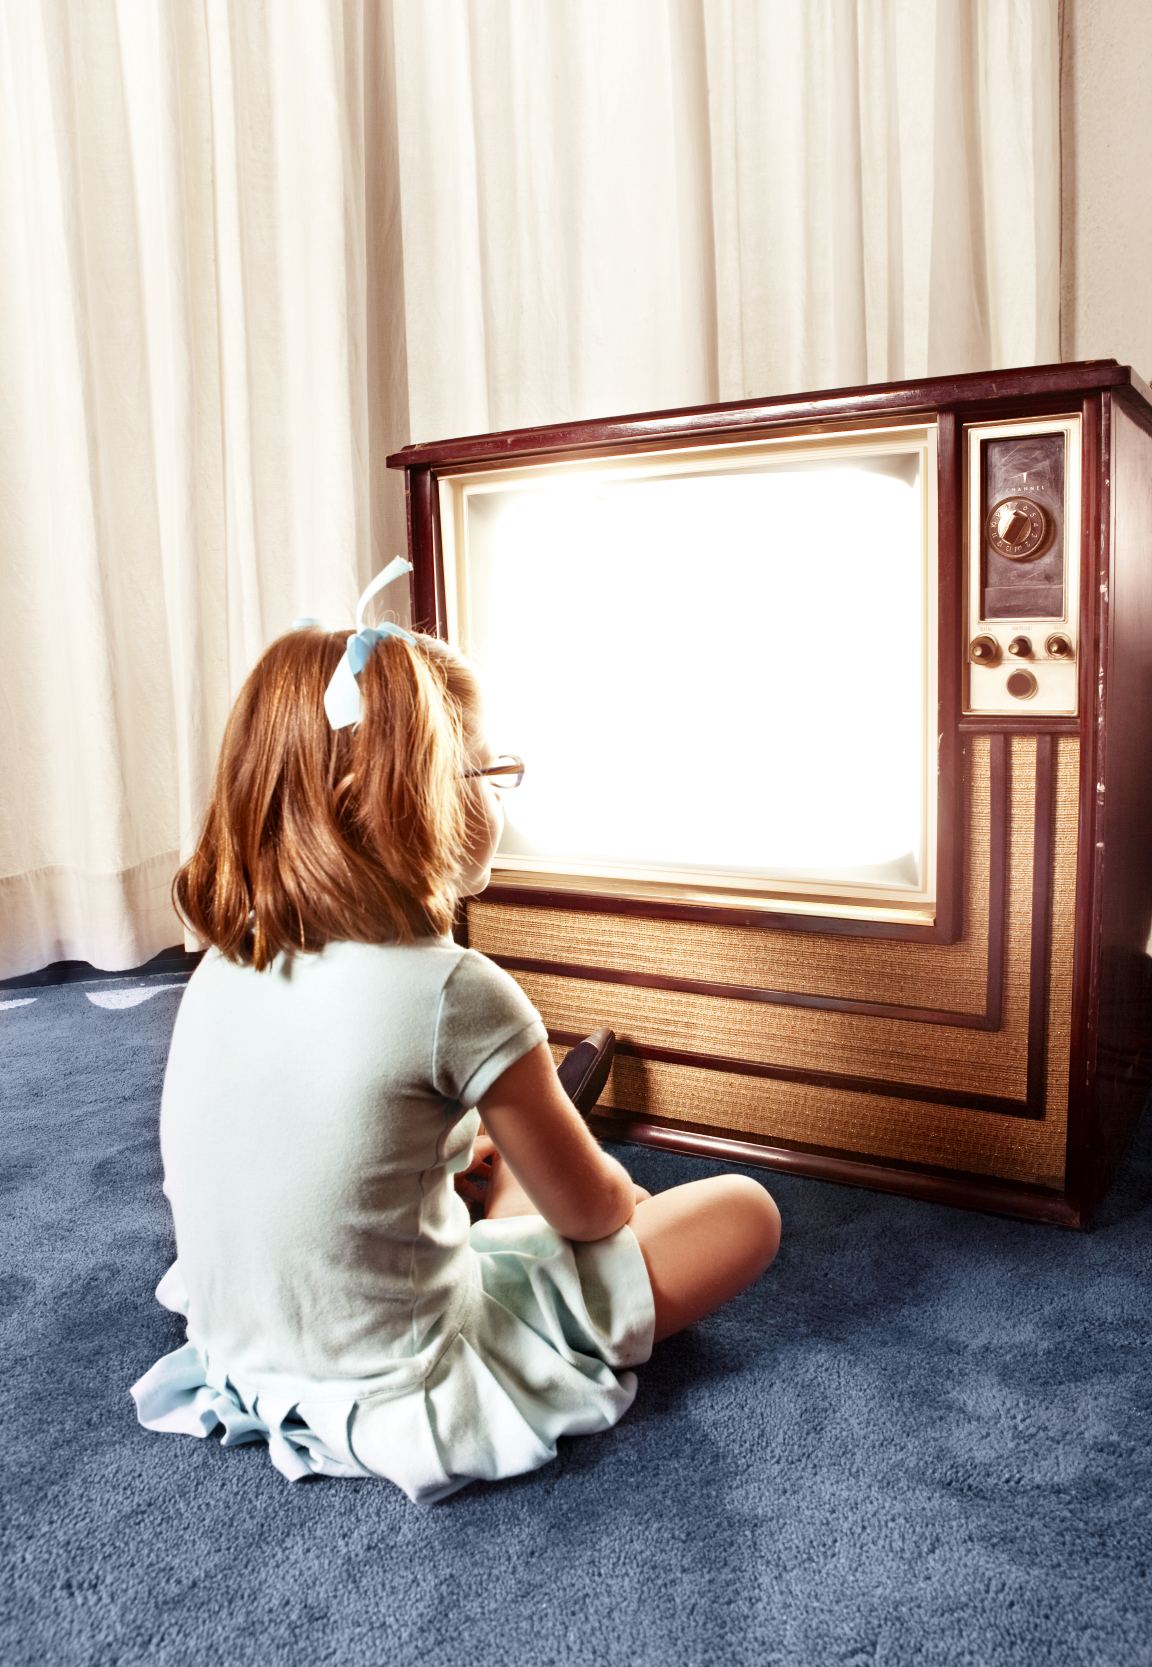 Why Kids Watch the Same TV Shows Over and Over